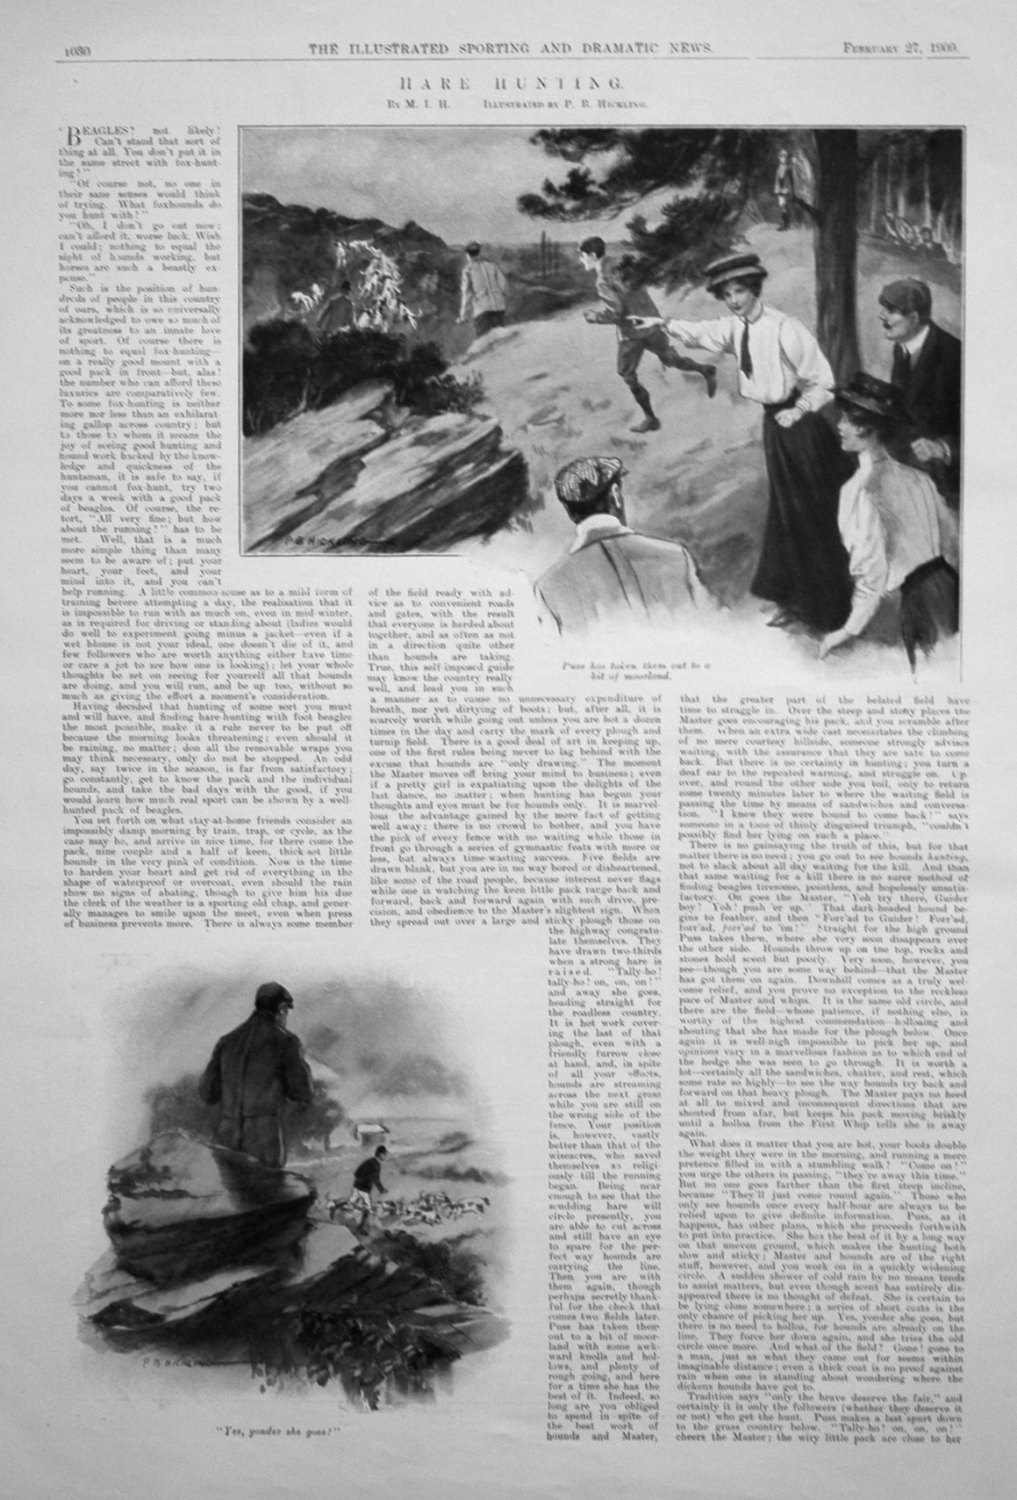 Hare Hunting. By M.I.H. 1909